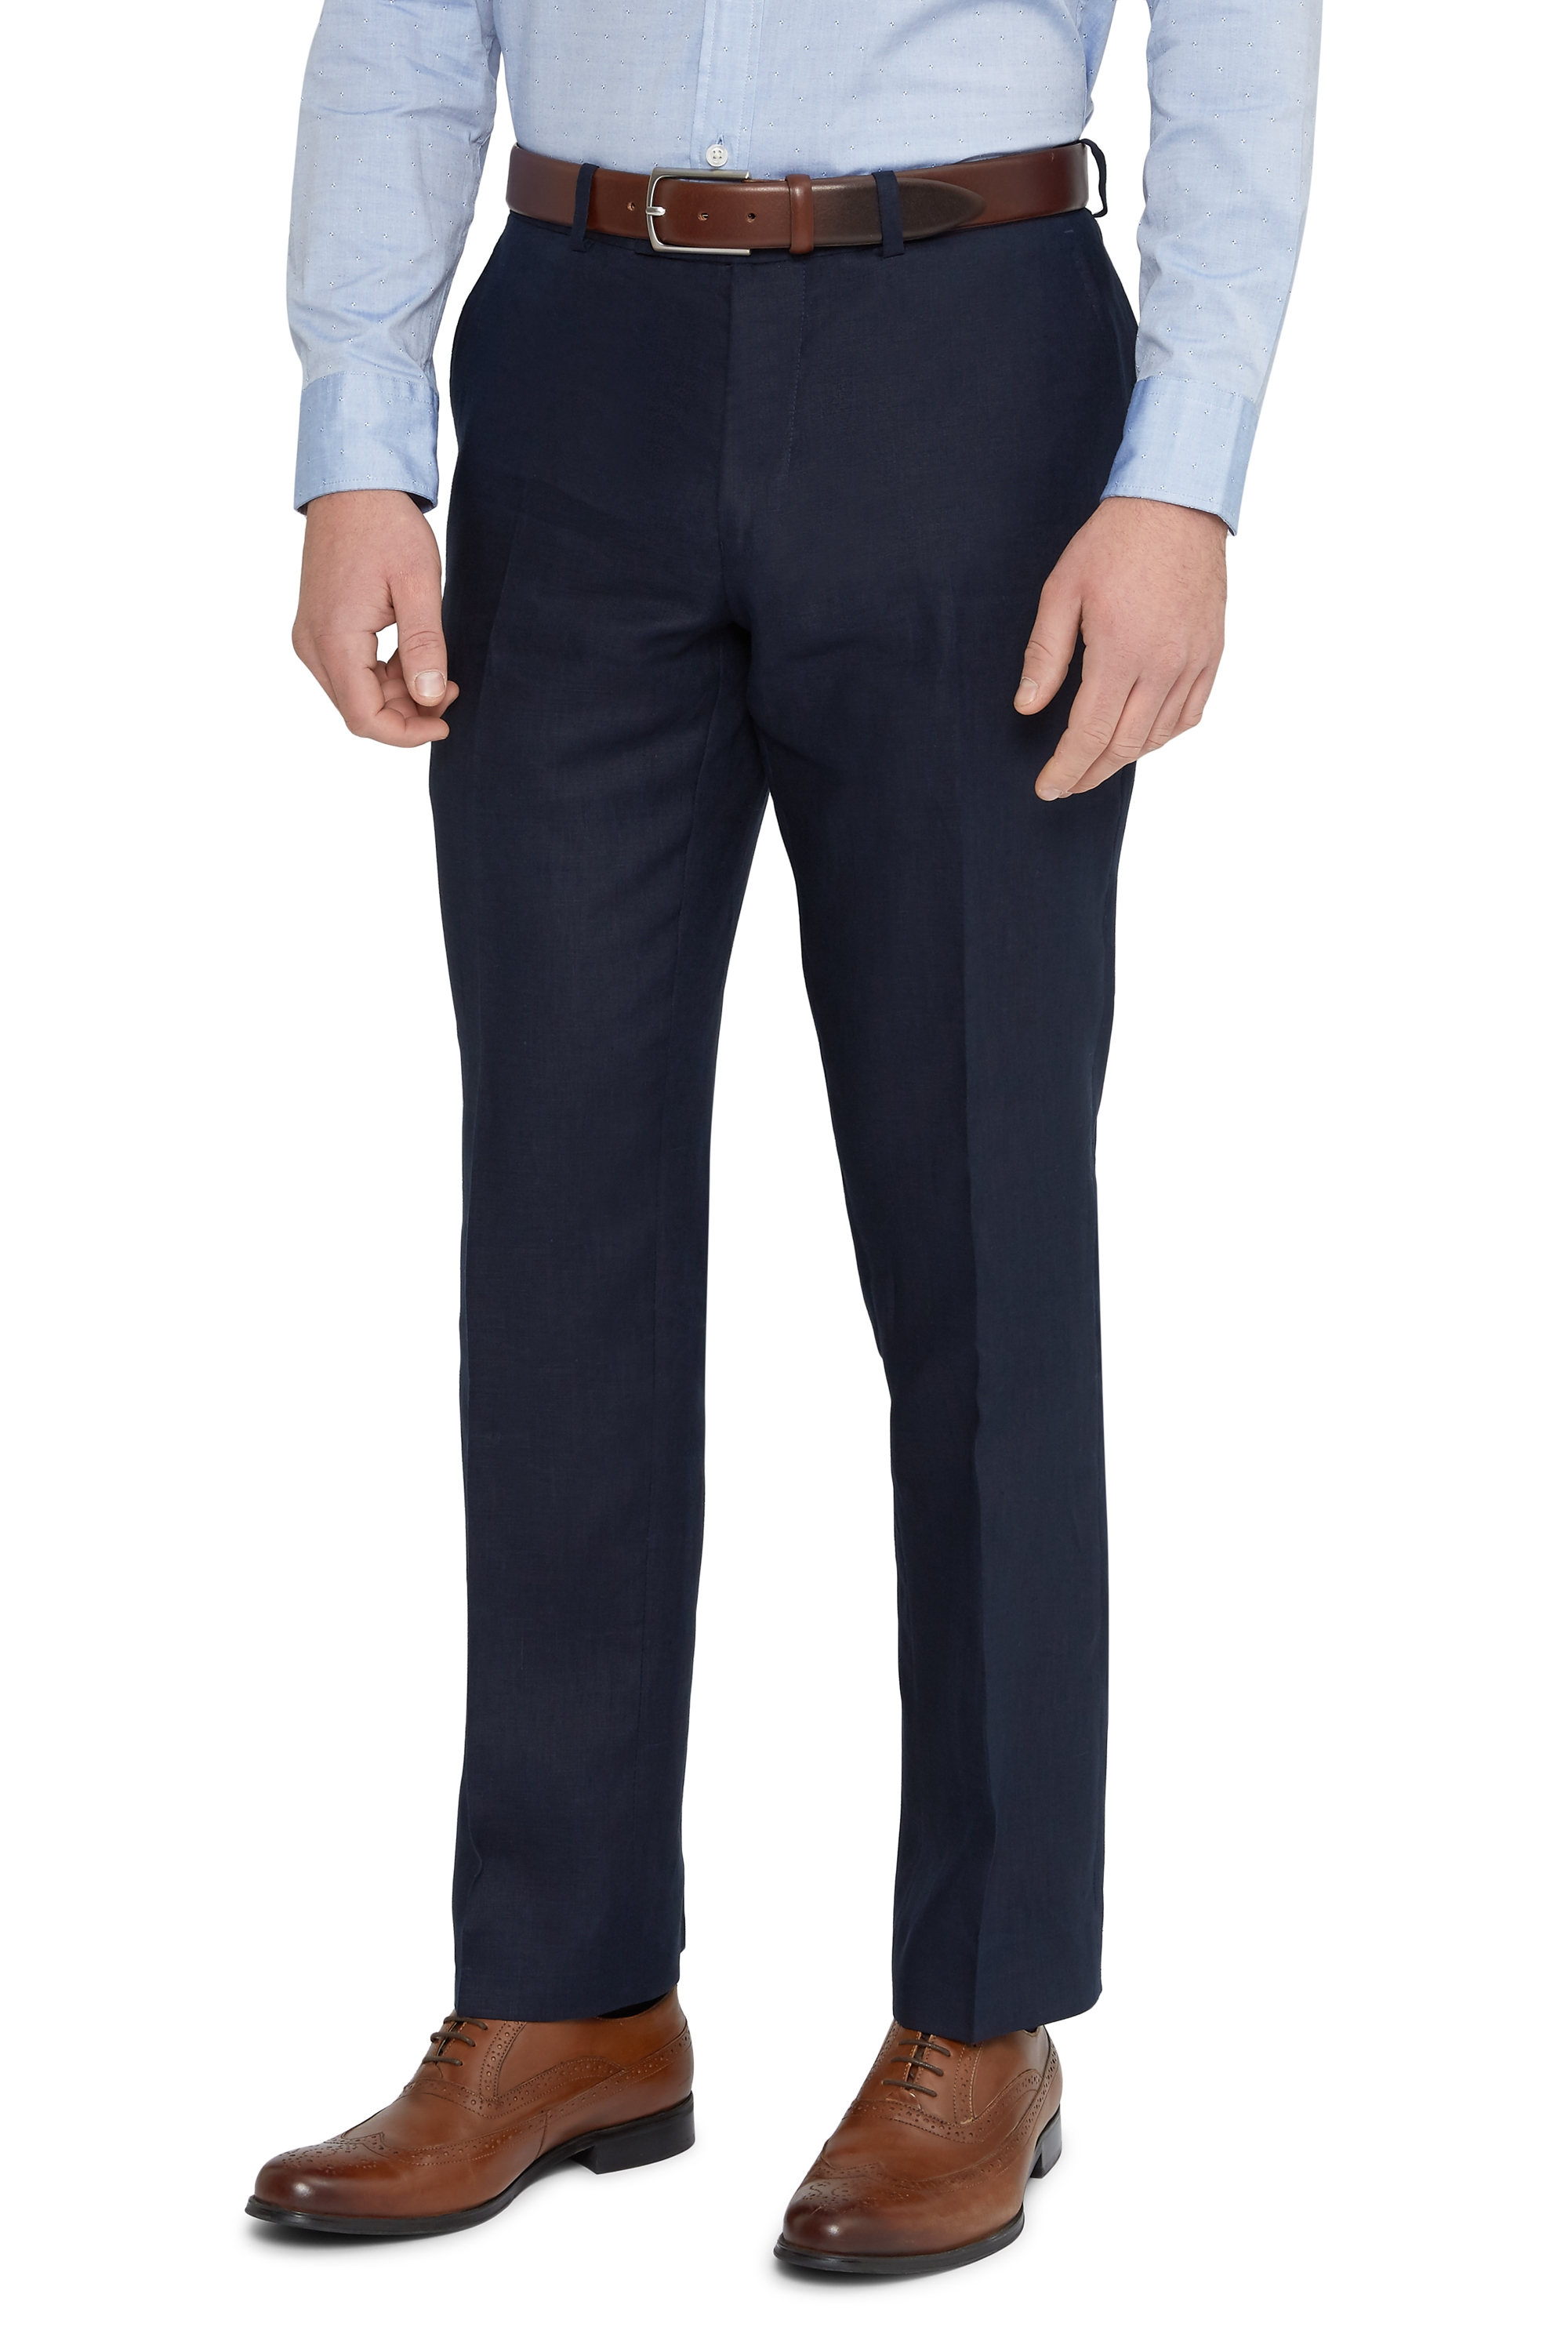 Moss 1851 Mens Navy Blue Suit Trousers Tailored Fit Linen